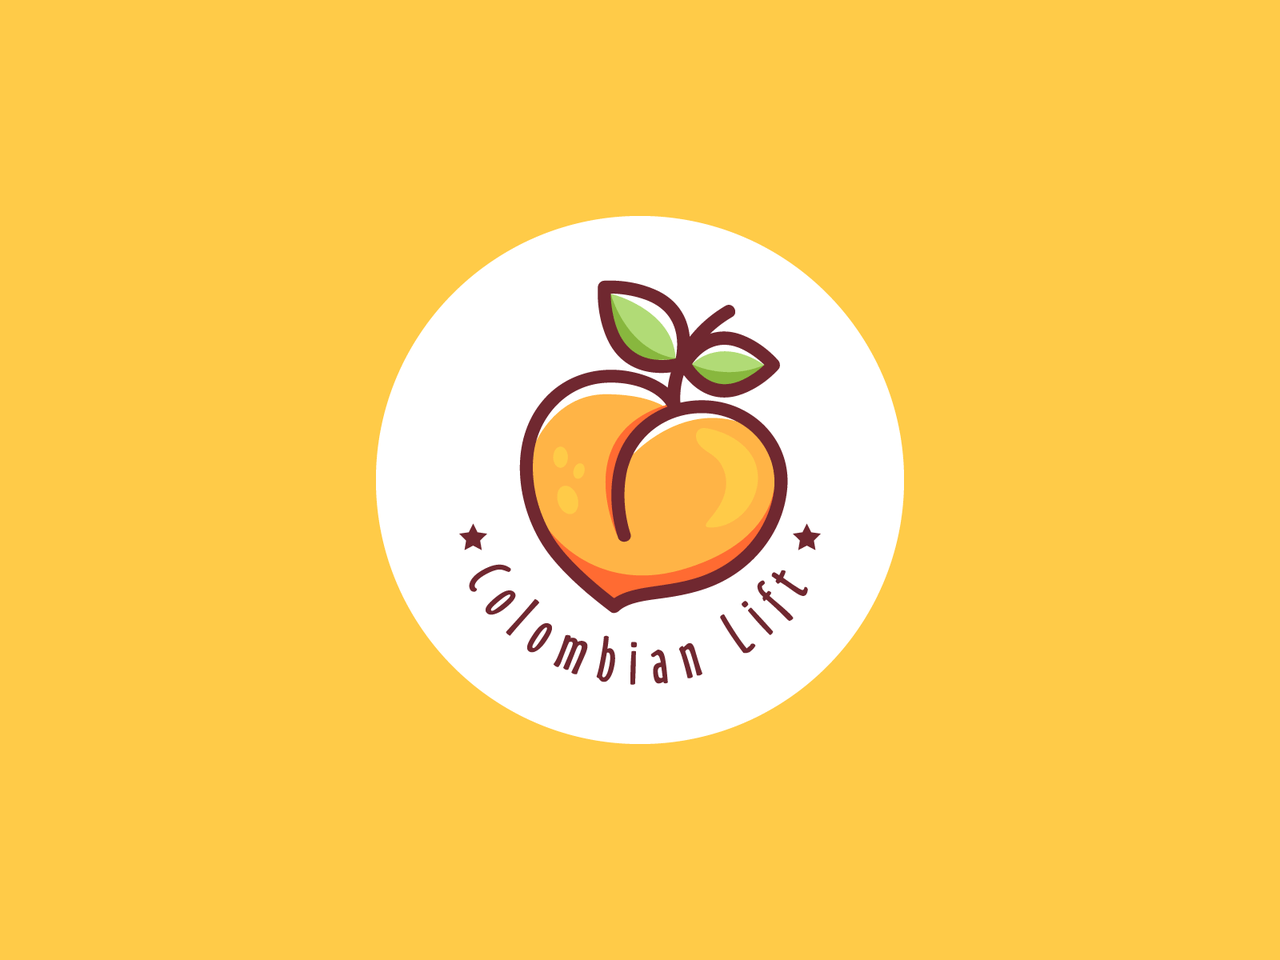 peach logo png 10 free Cliparts | Download images on Clipground 2020